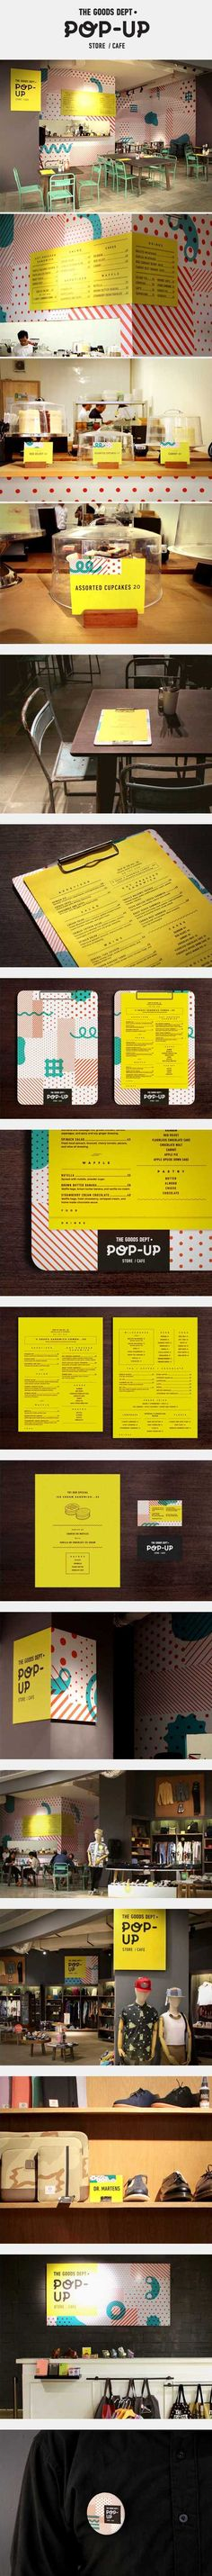 Loja e comunicação visual em total sintonia - Goods Dept Pop-Up Store/Cafe on Behance